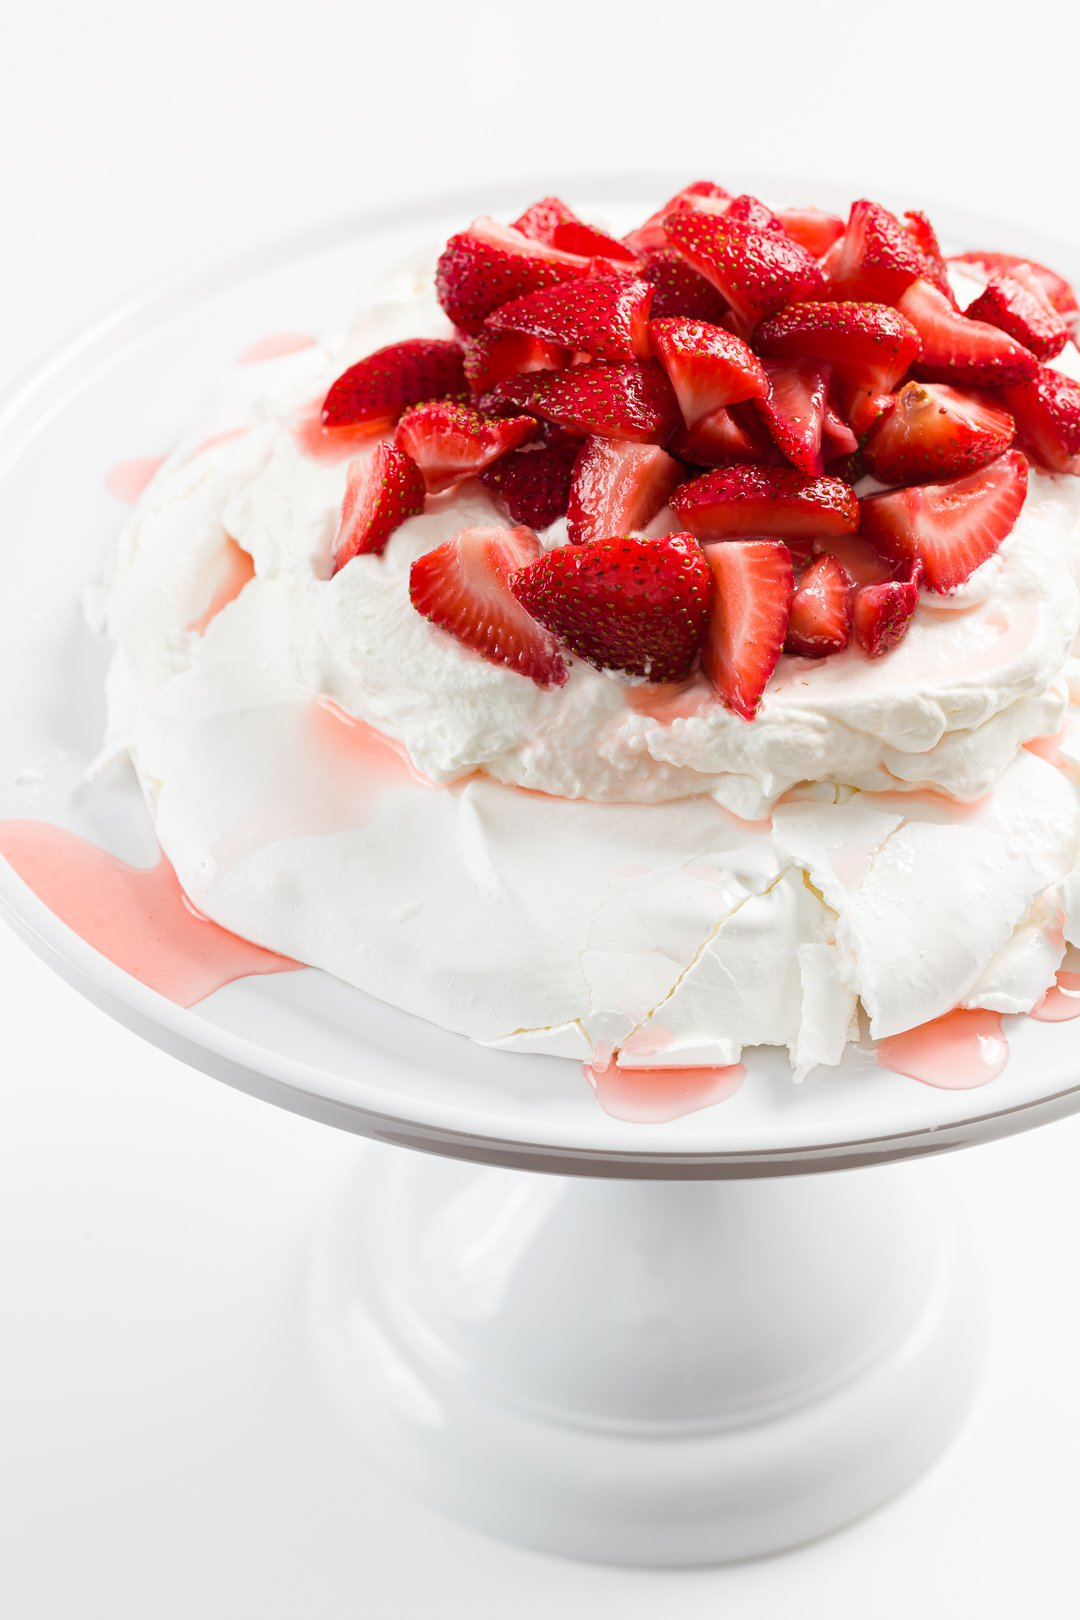 Stunning Strawberry Pavlova